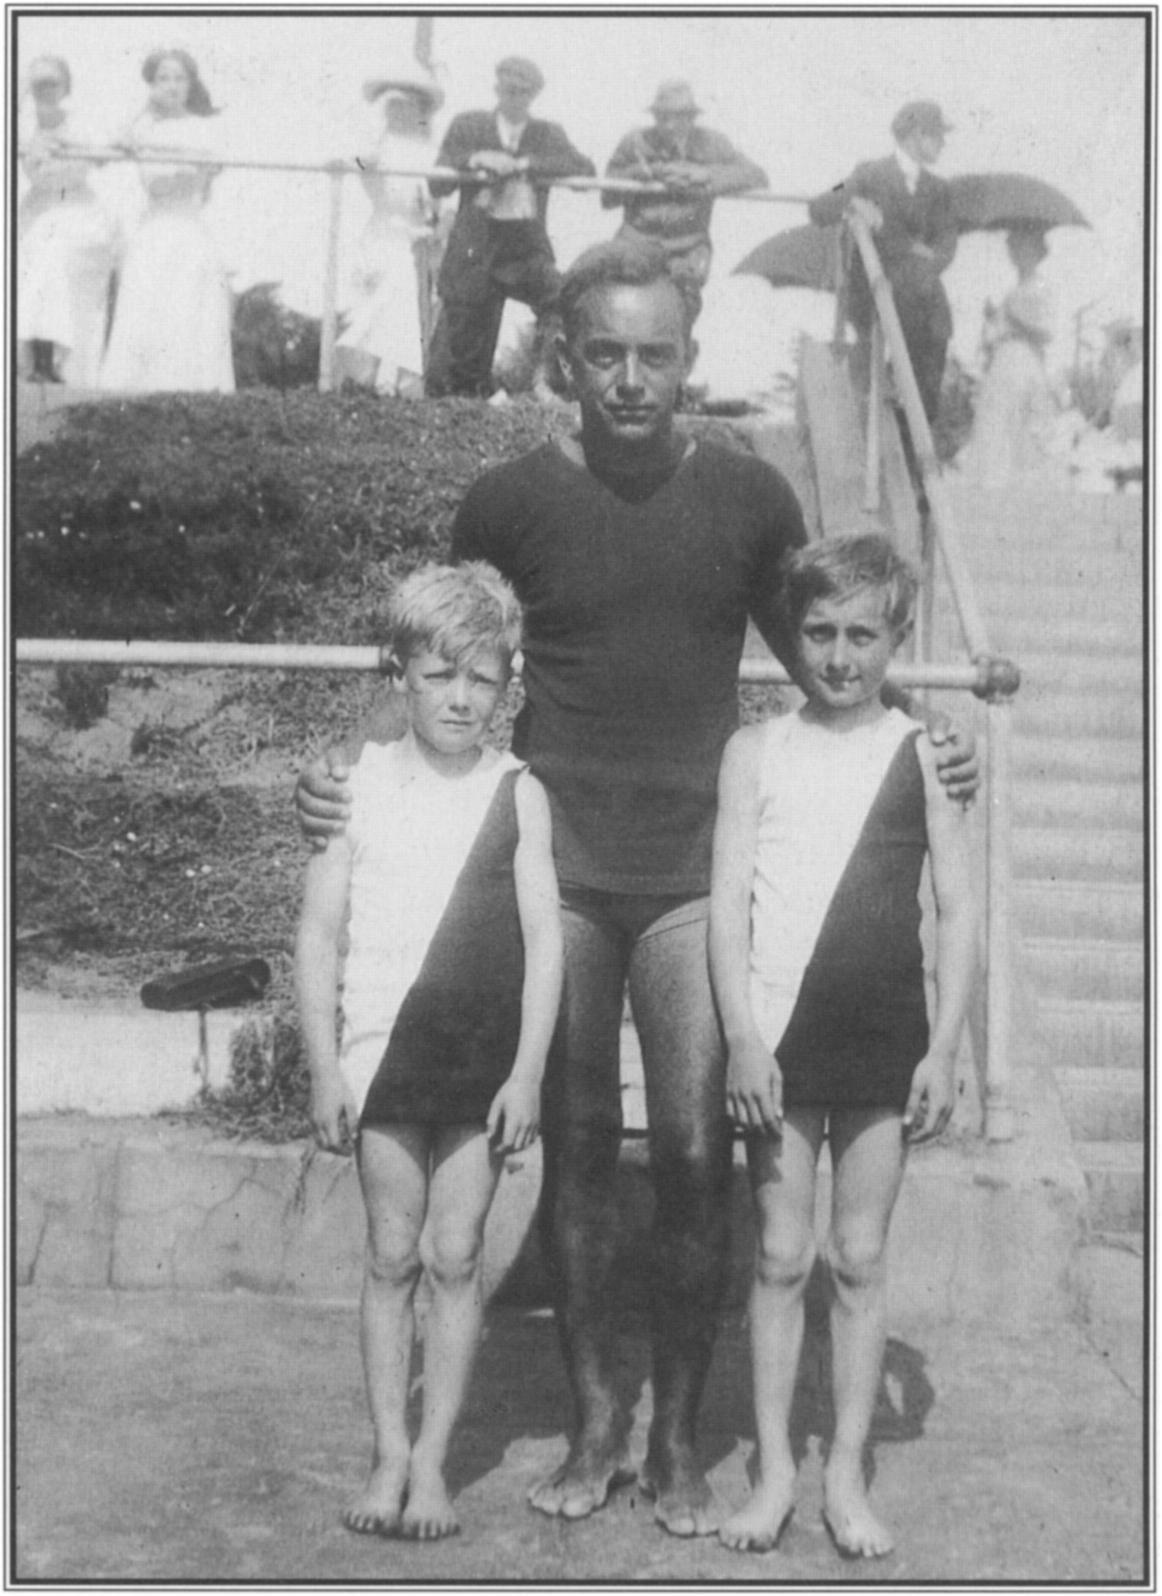 At Redondo Beach in 1910, George Freeth posed with two of his star pupils, brothers Tommy and Jerry Witt. Knock-kneed Tommy, on the left, was to become a div ing champion; Jerry was a nationally ranked swimmer.